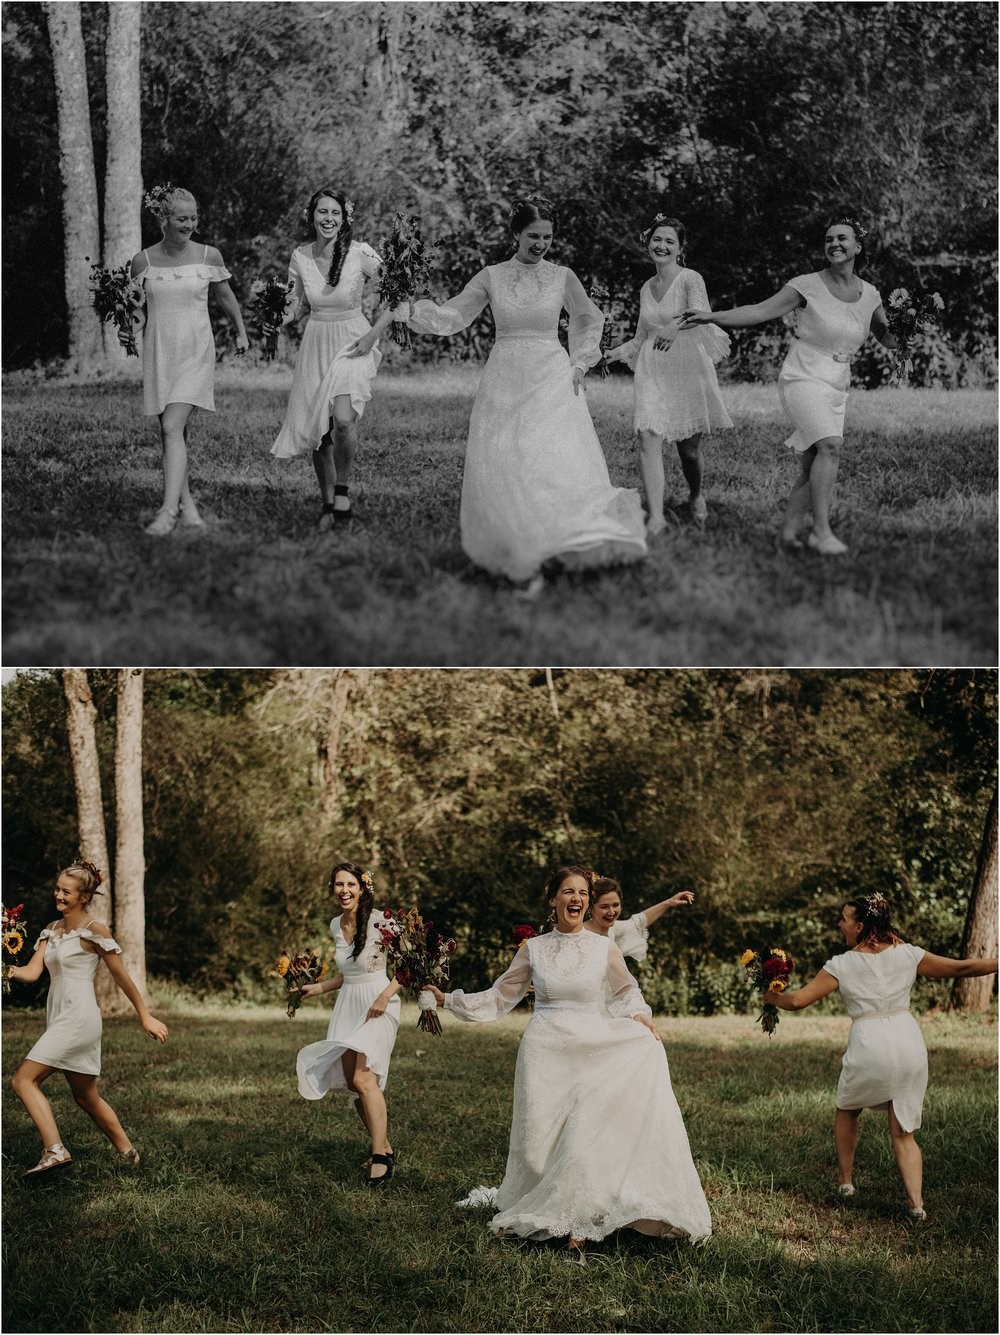 Bridal party skips through the field